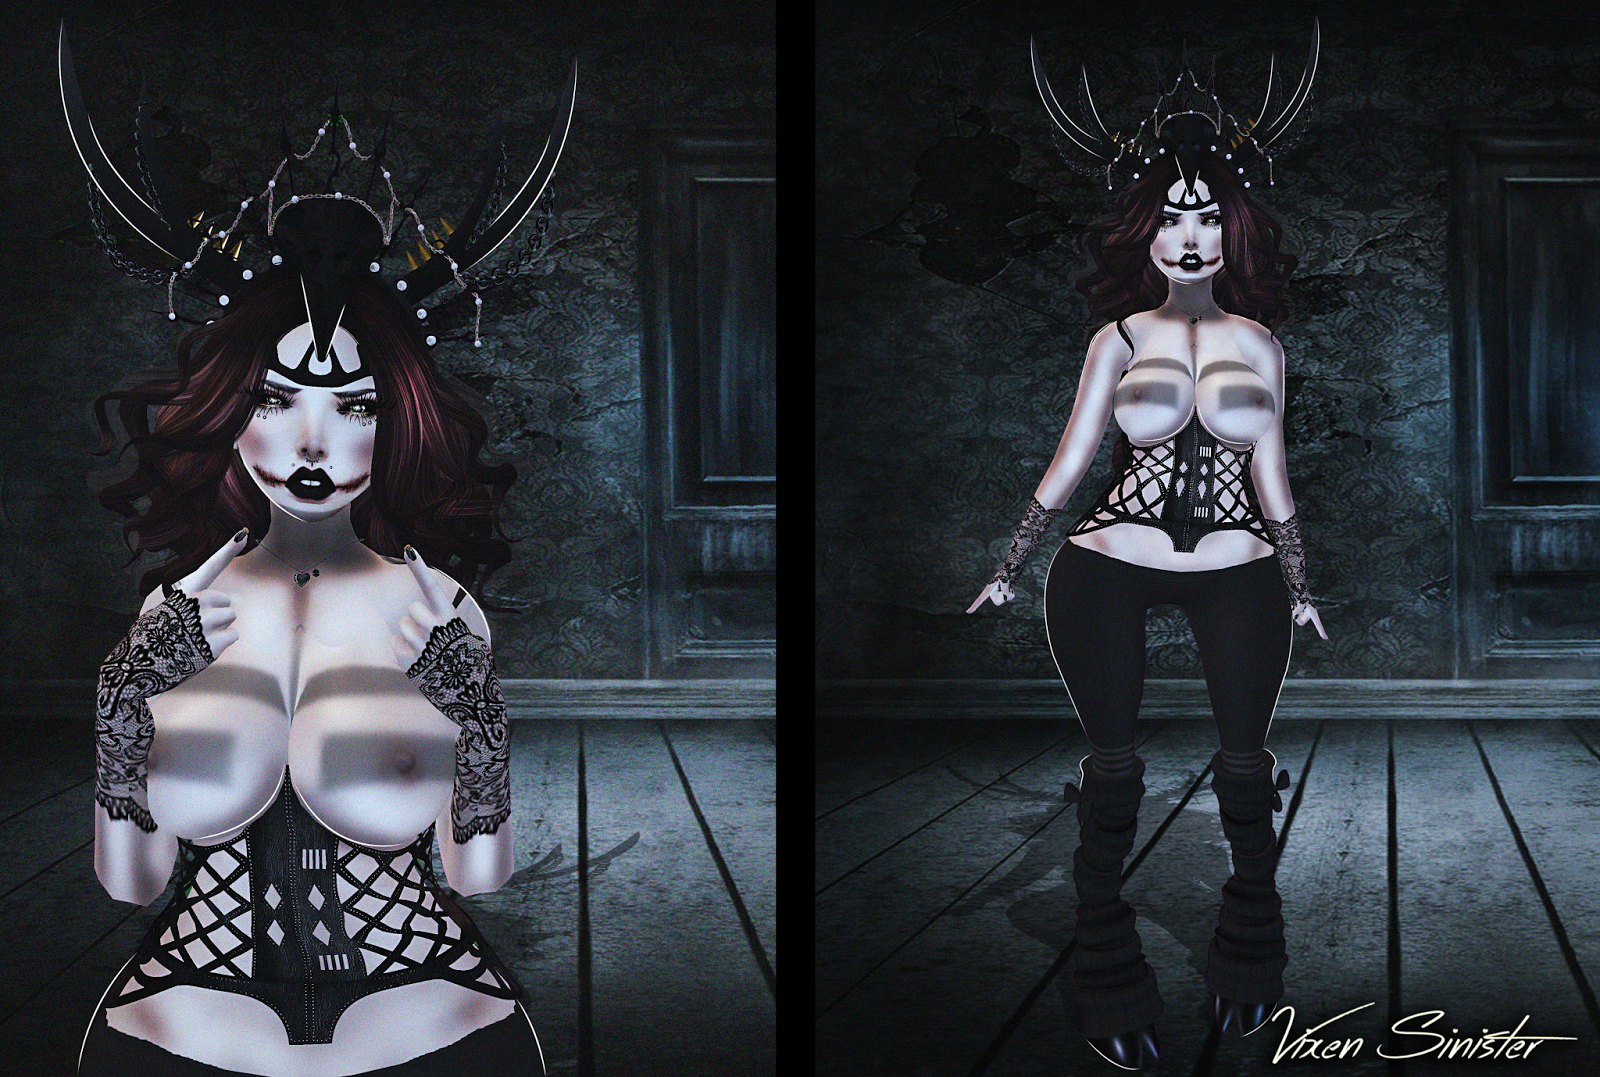 https://www.flickr.com/photos/vixensinister/15499092826/